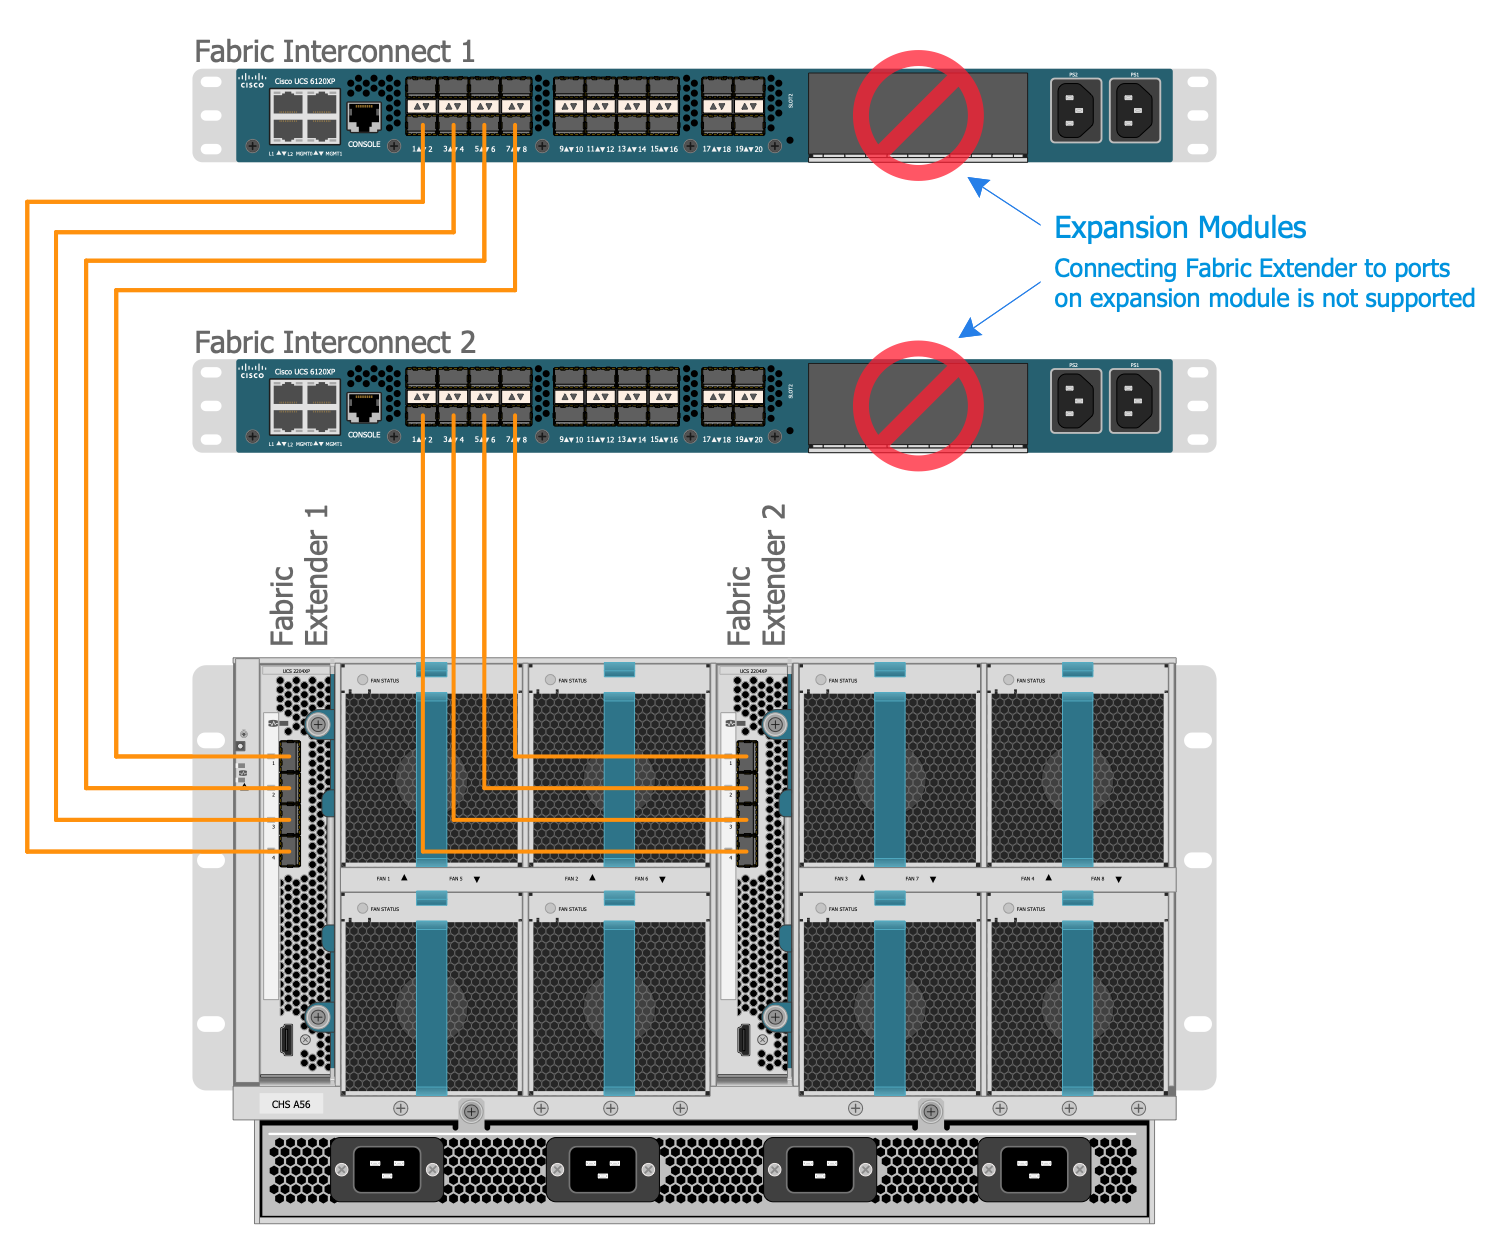 Proper Connection Between the Server Chassis and two Fabric Interconnects